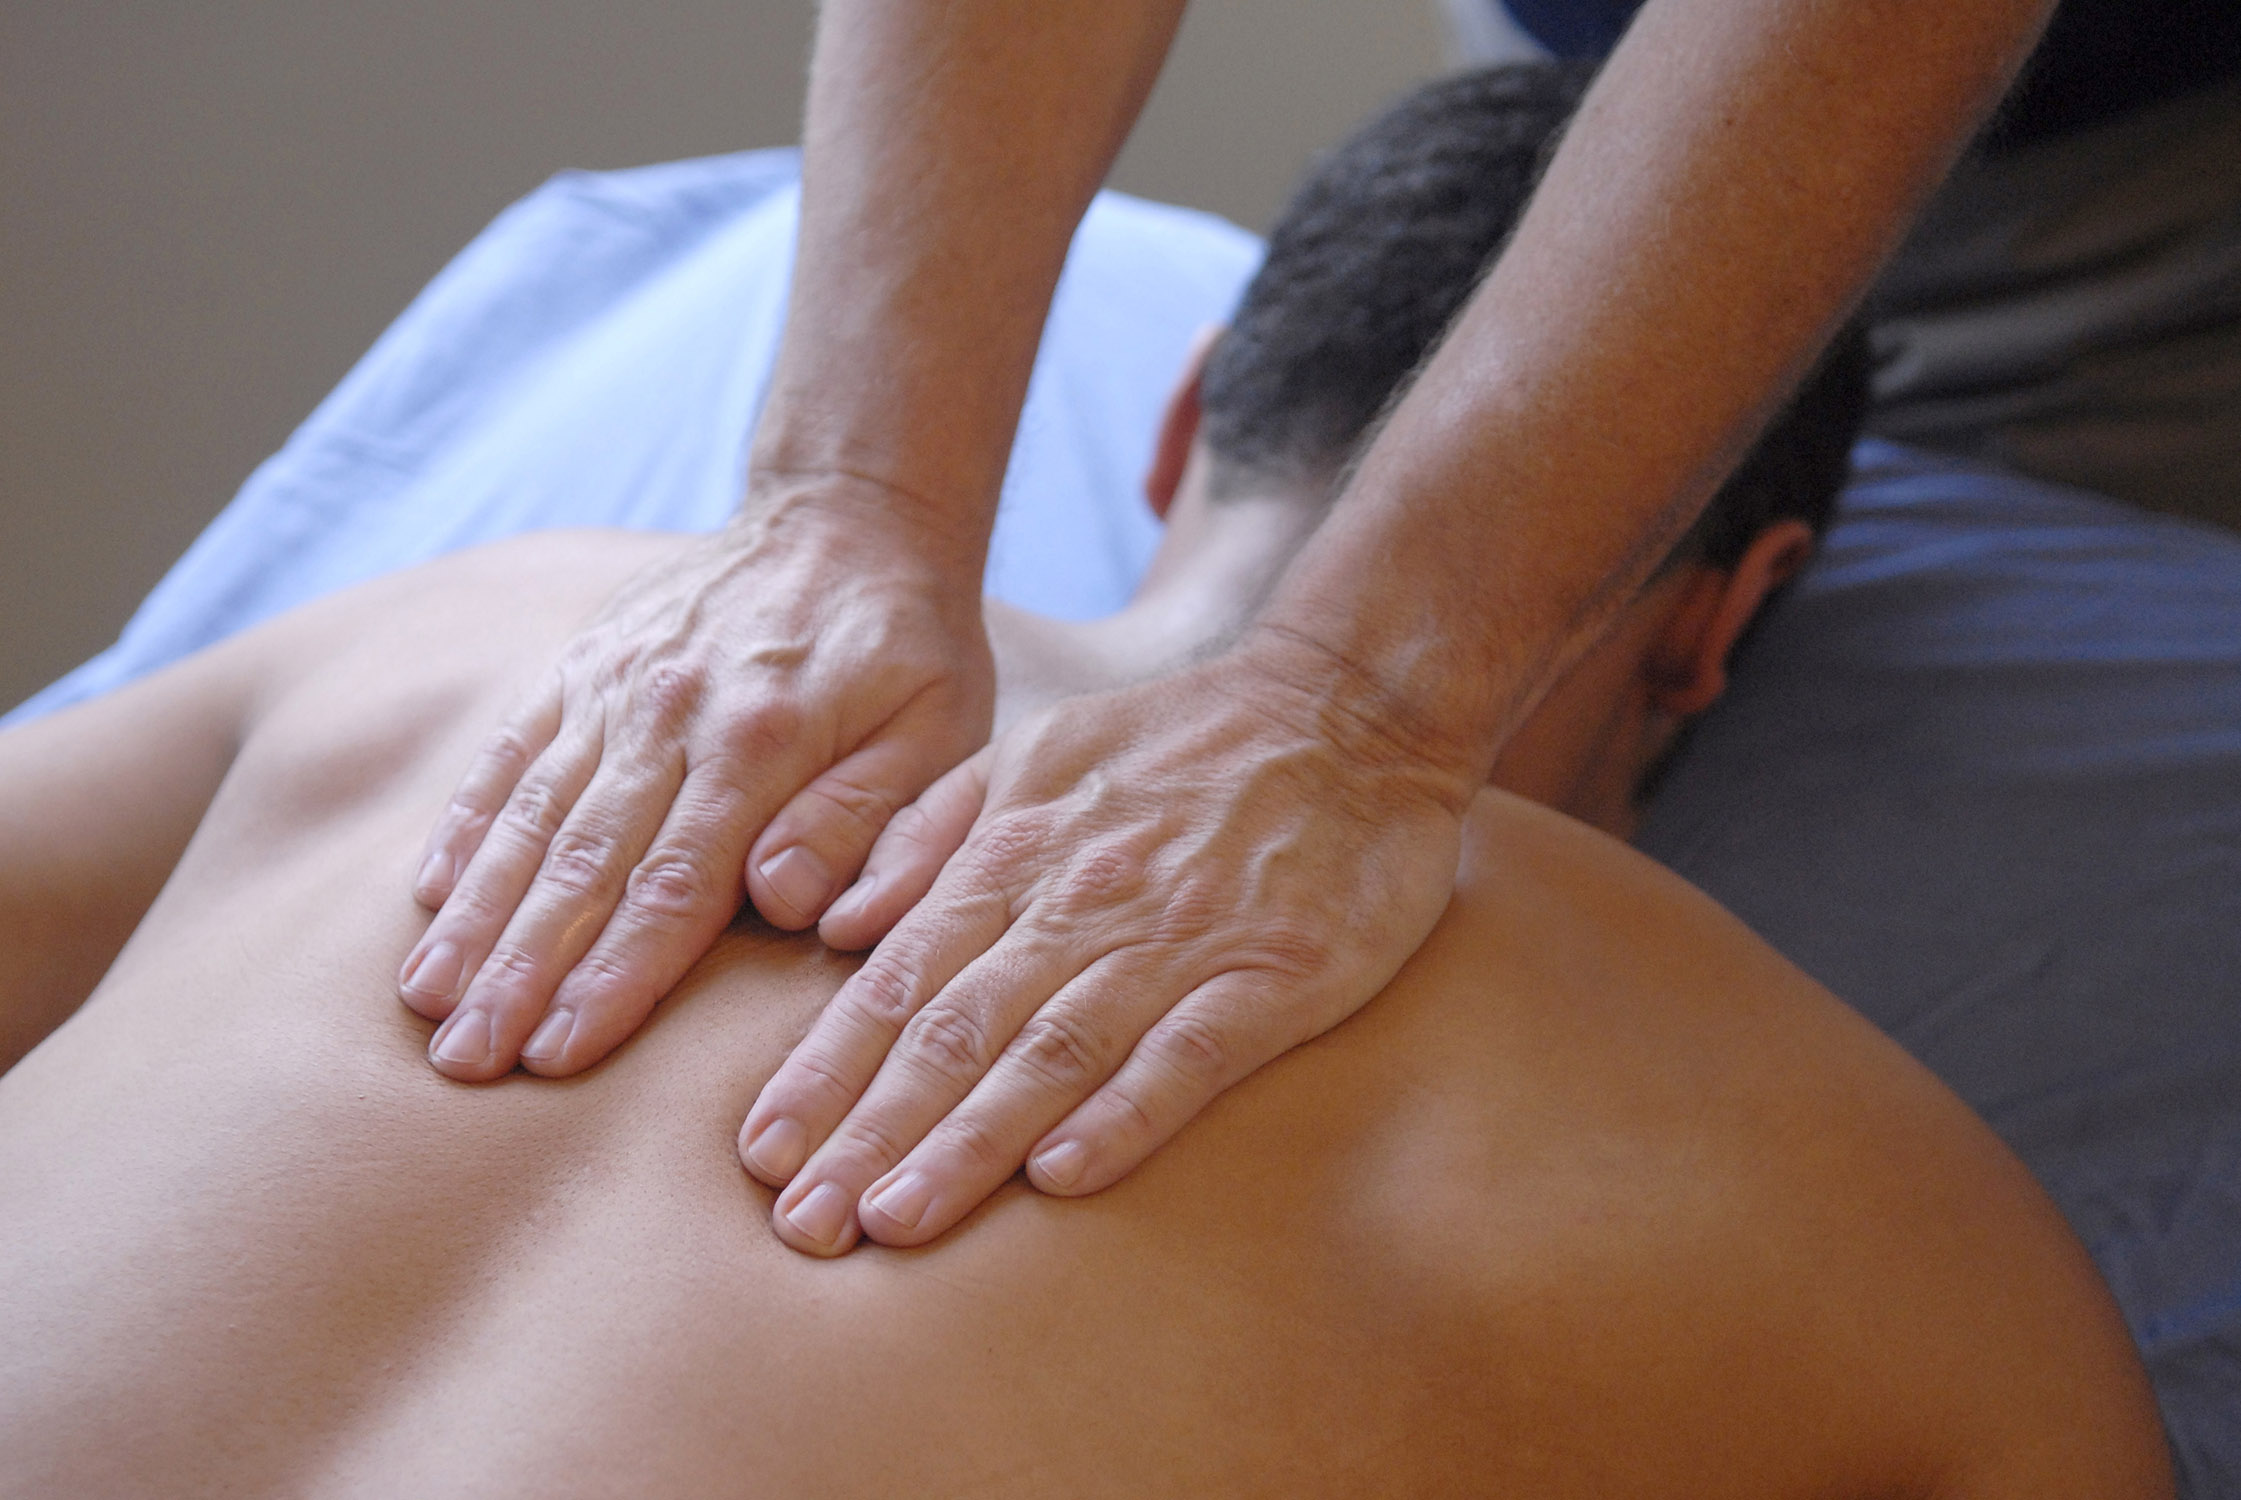 Male Full Body Massage Video